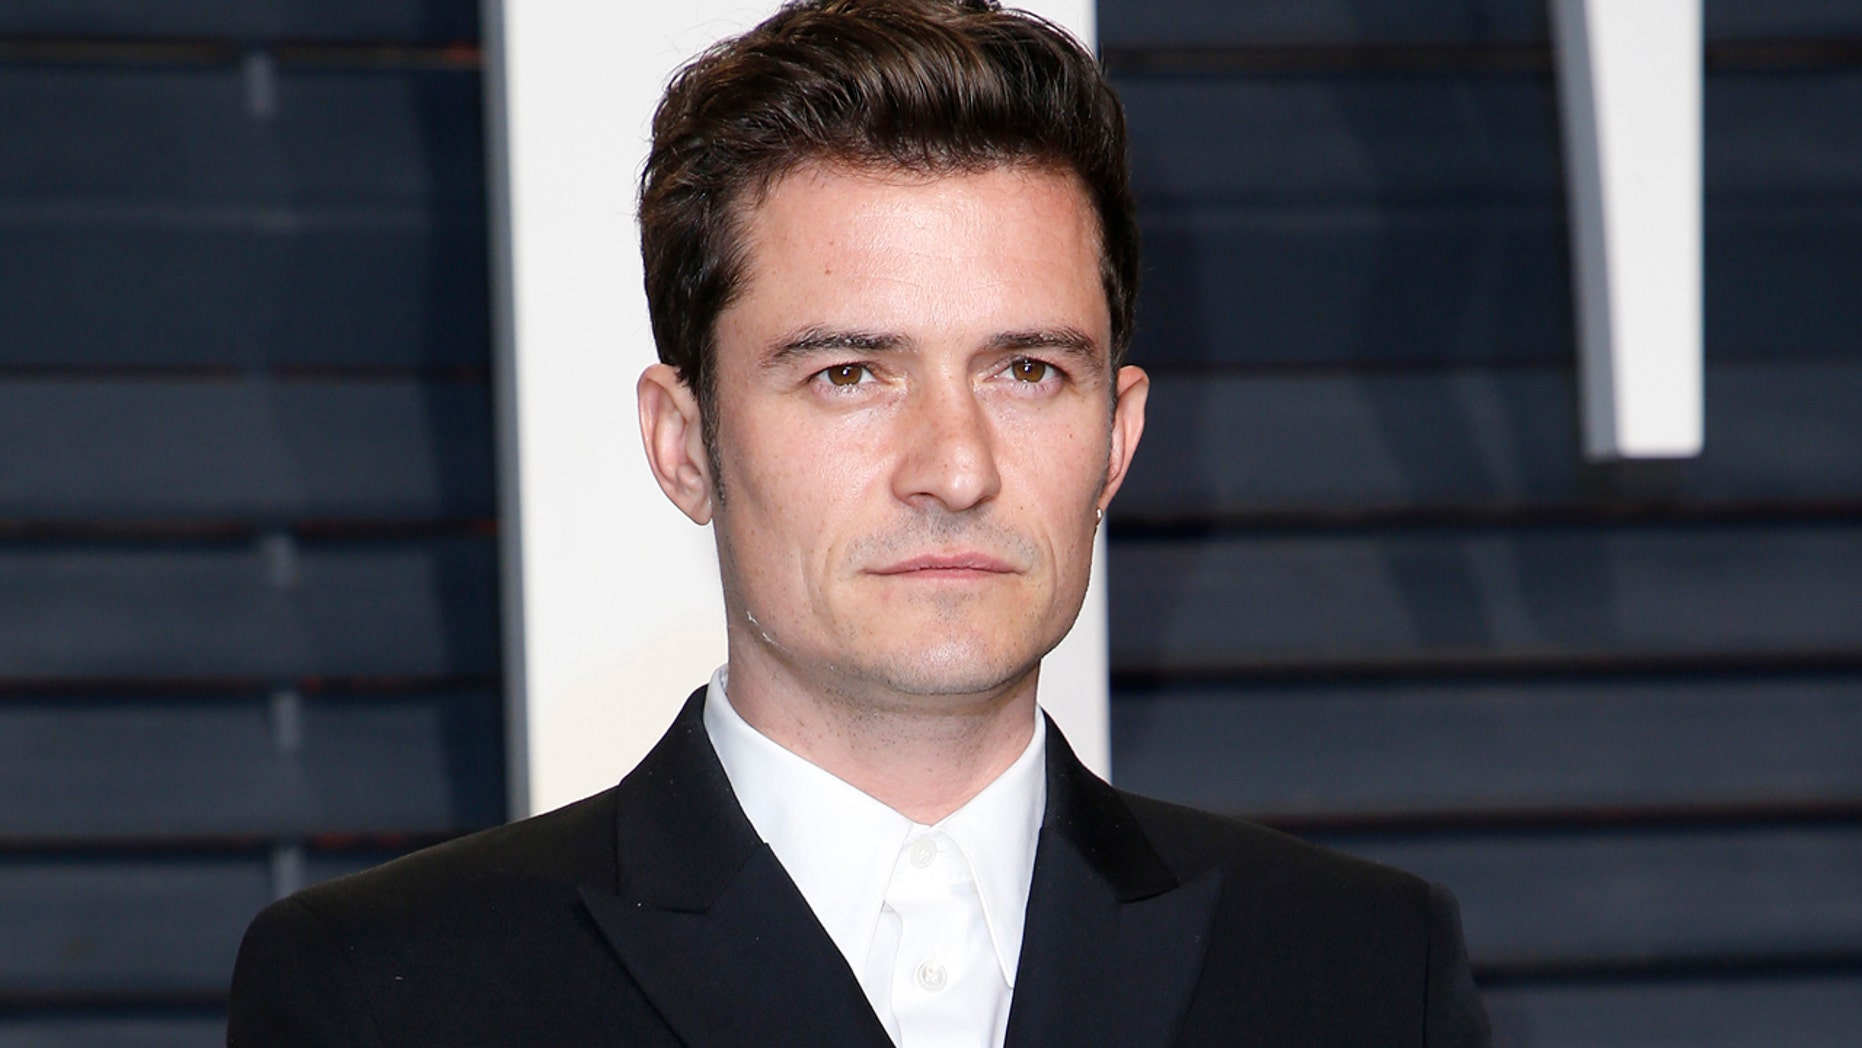 89th Academy Awards - Oscars Vanity Fair Party - Beverly Hills, California, U.S. - 26/02/17 – Actor Orlando Bloom. REUTERS/Danny Moloshok - RTS10IYW